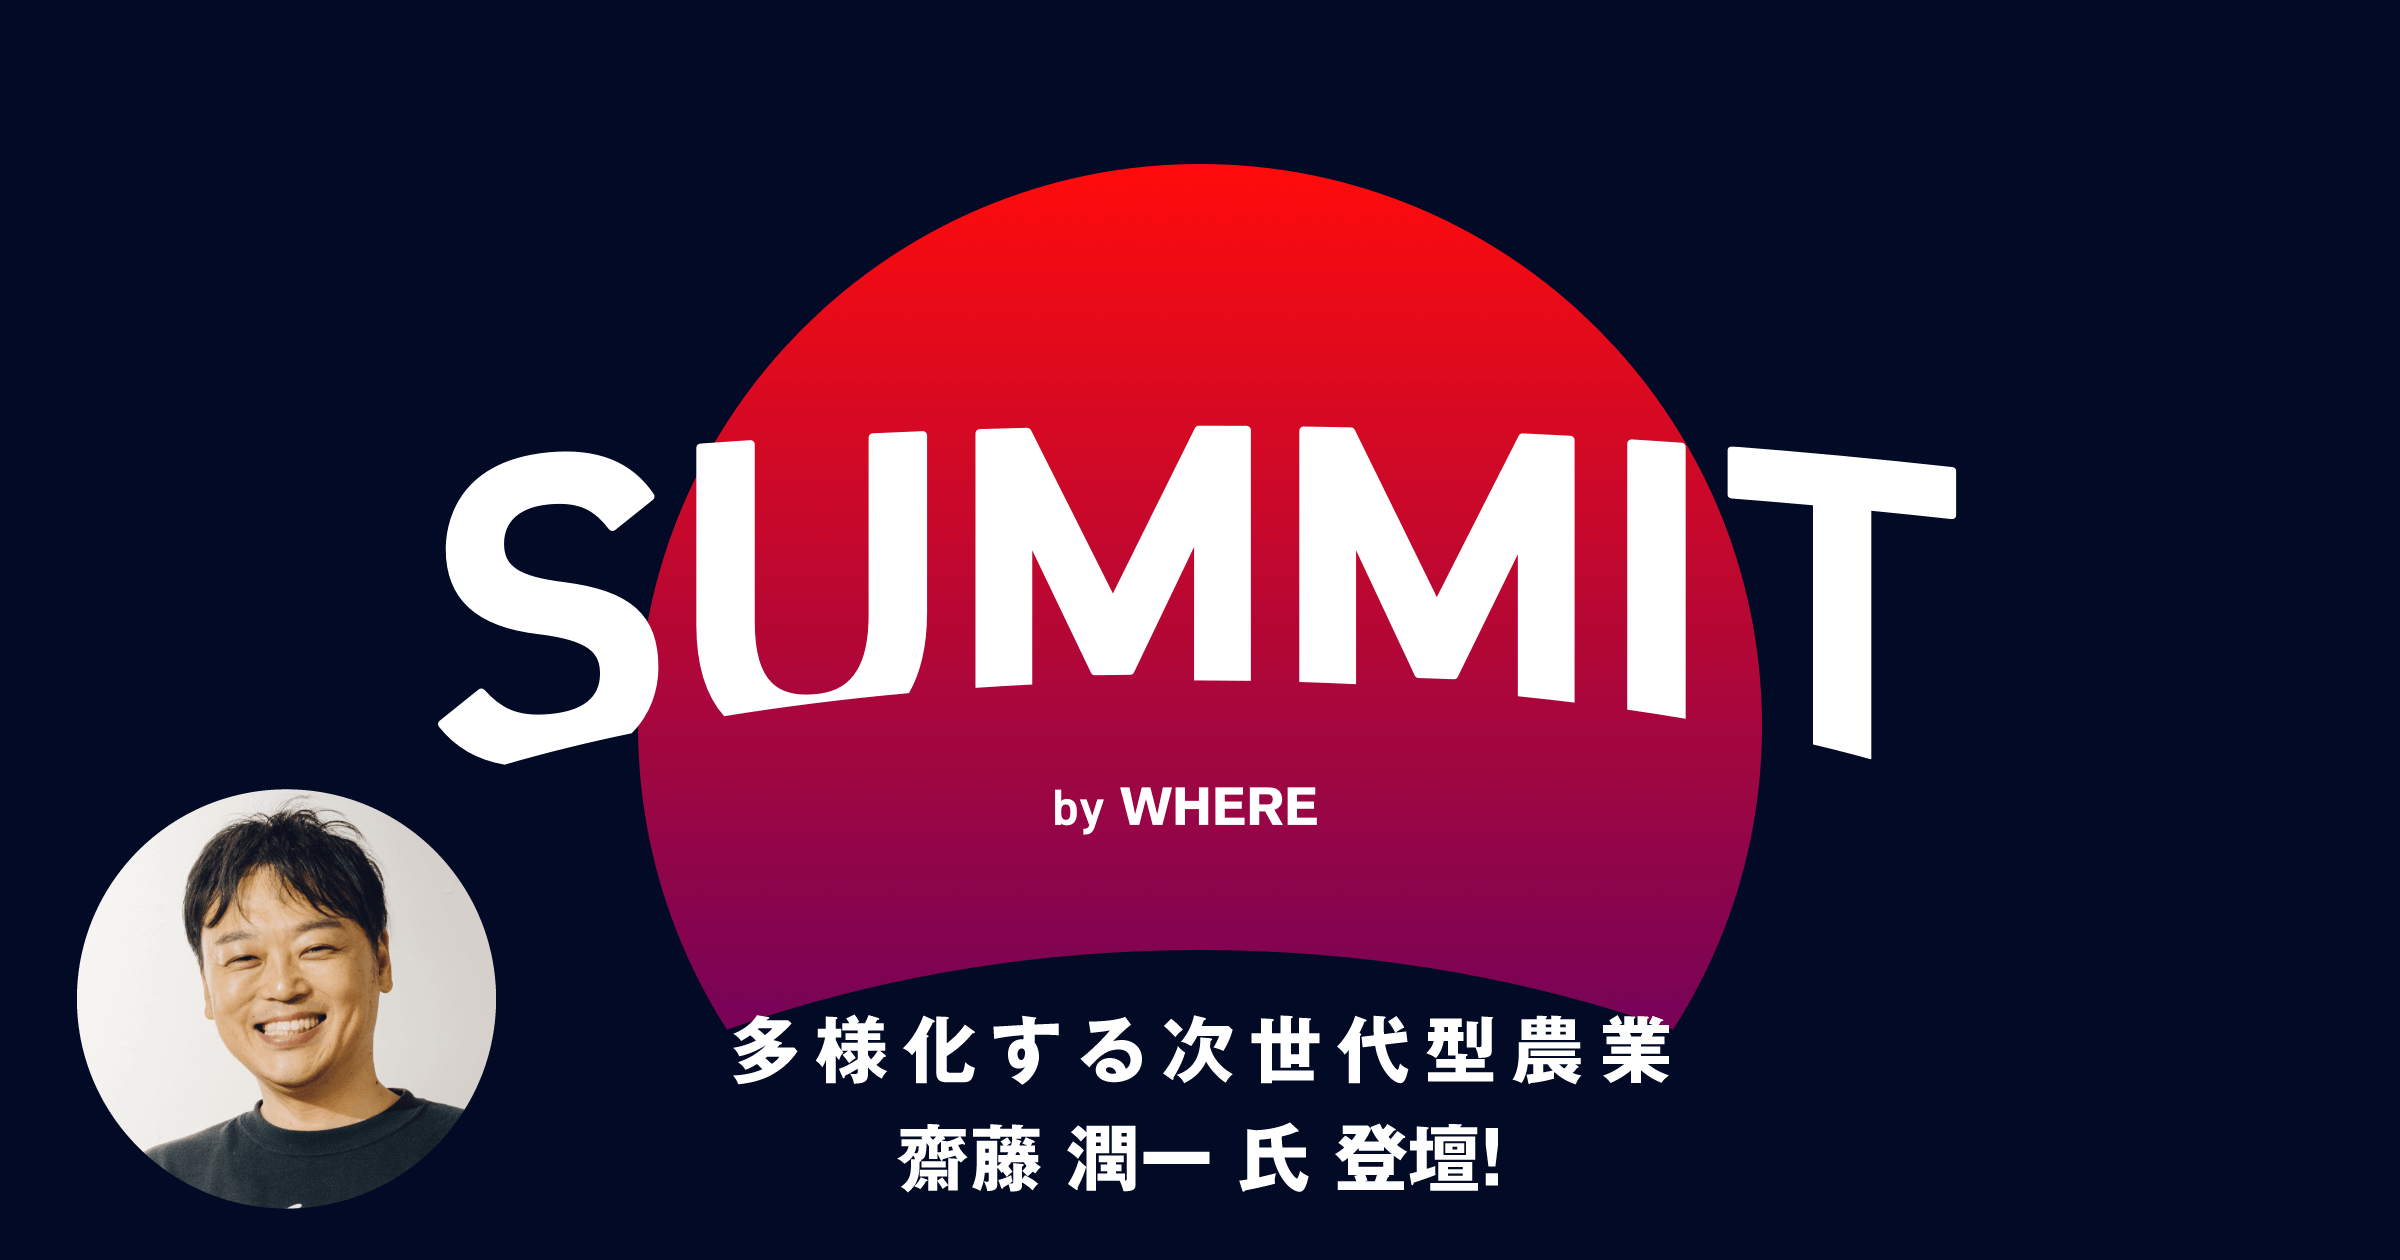 SUMMIT by WHERE